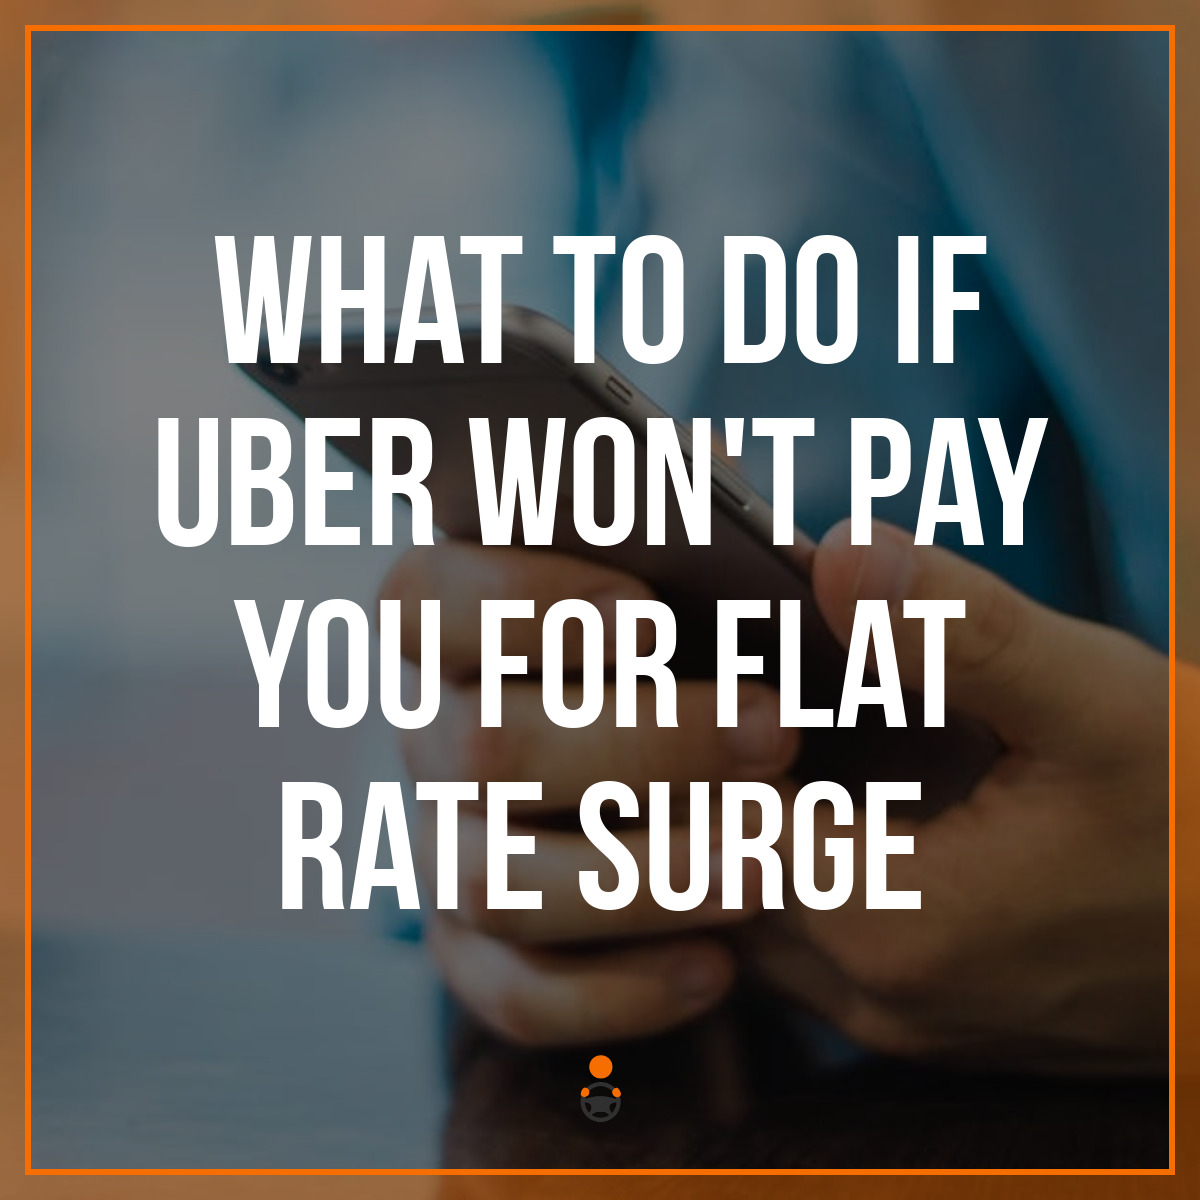 What to Do If Uber Won't Pay You for Flat Rate Surge